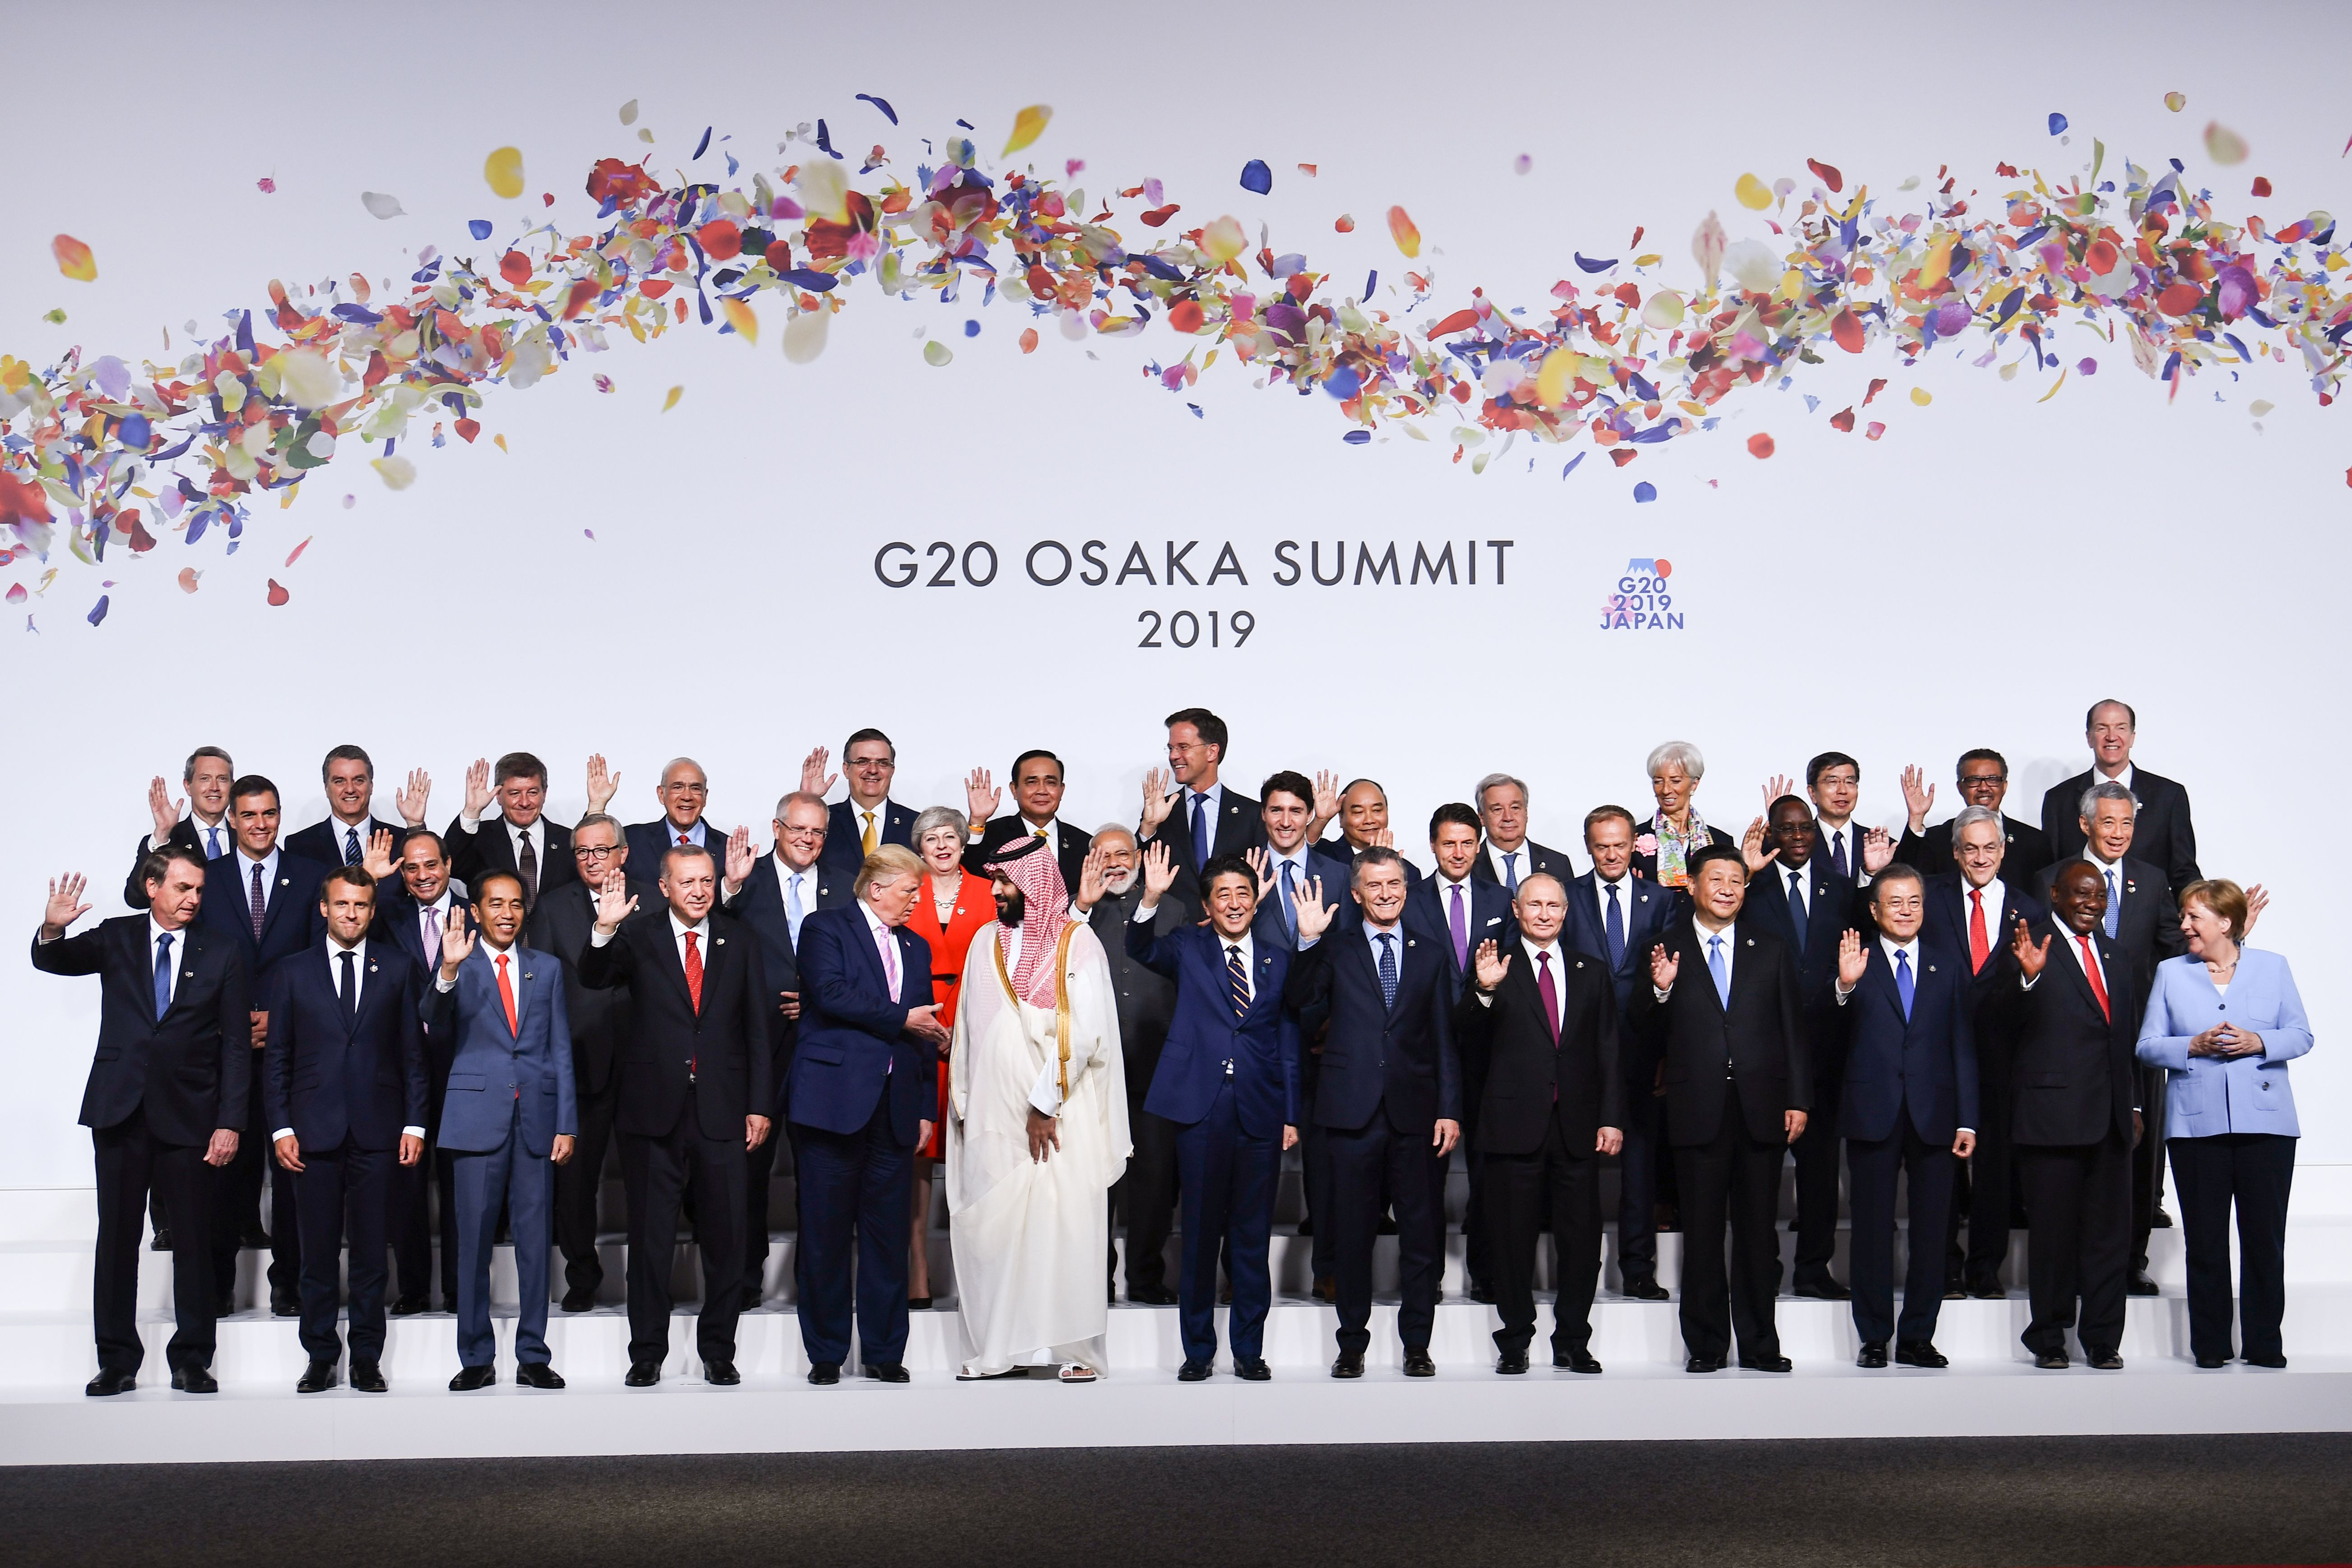 See the photo of Donald Trump and MBS at the G20 summit that everyone is talking about!